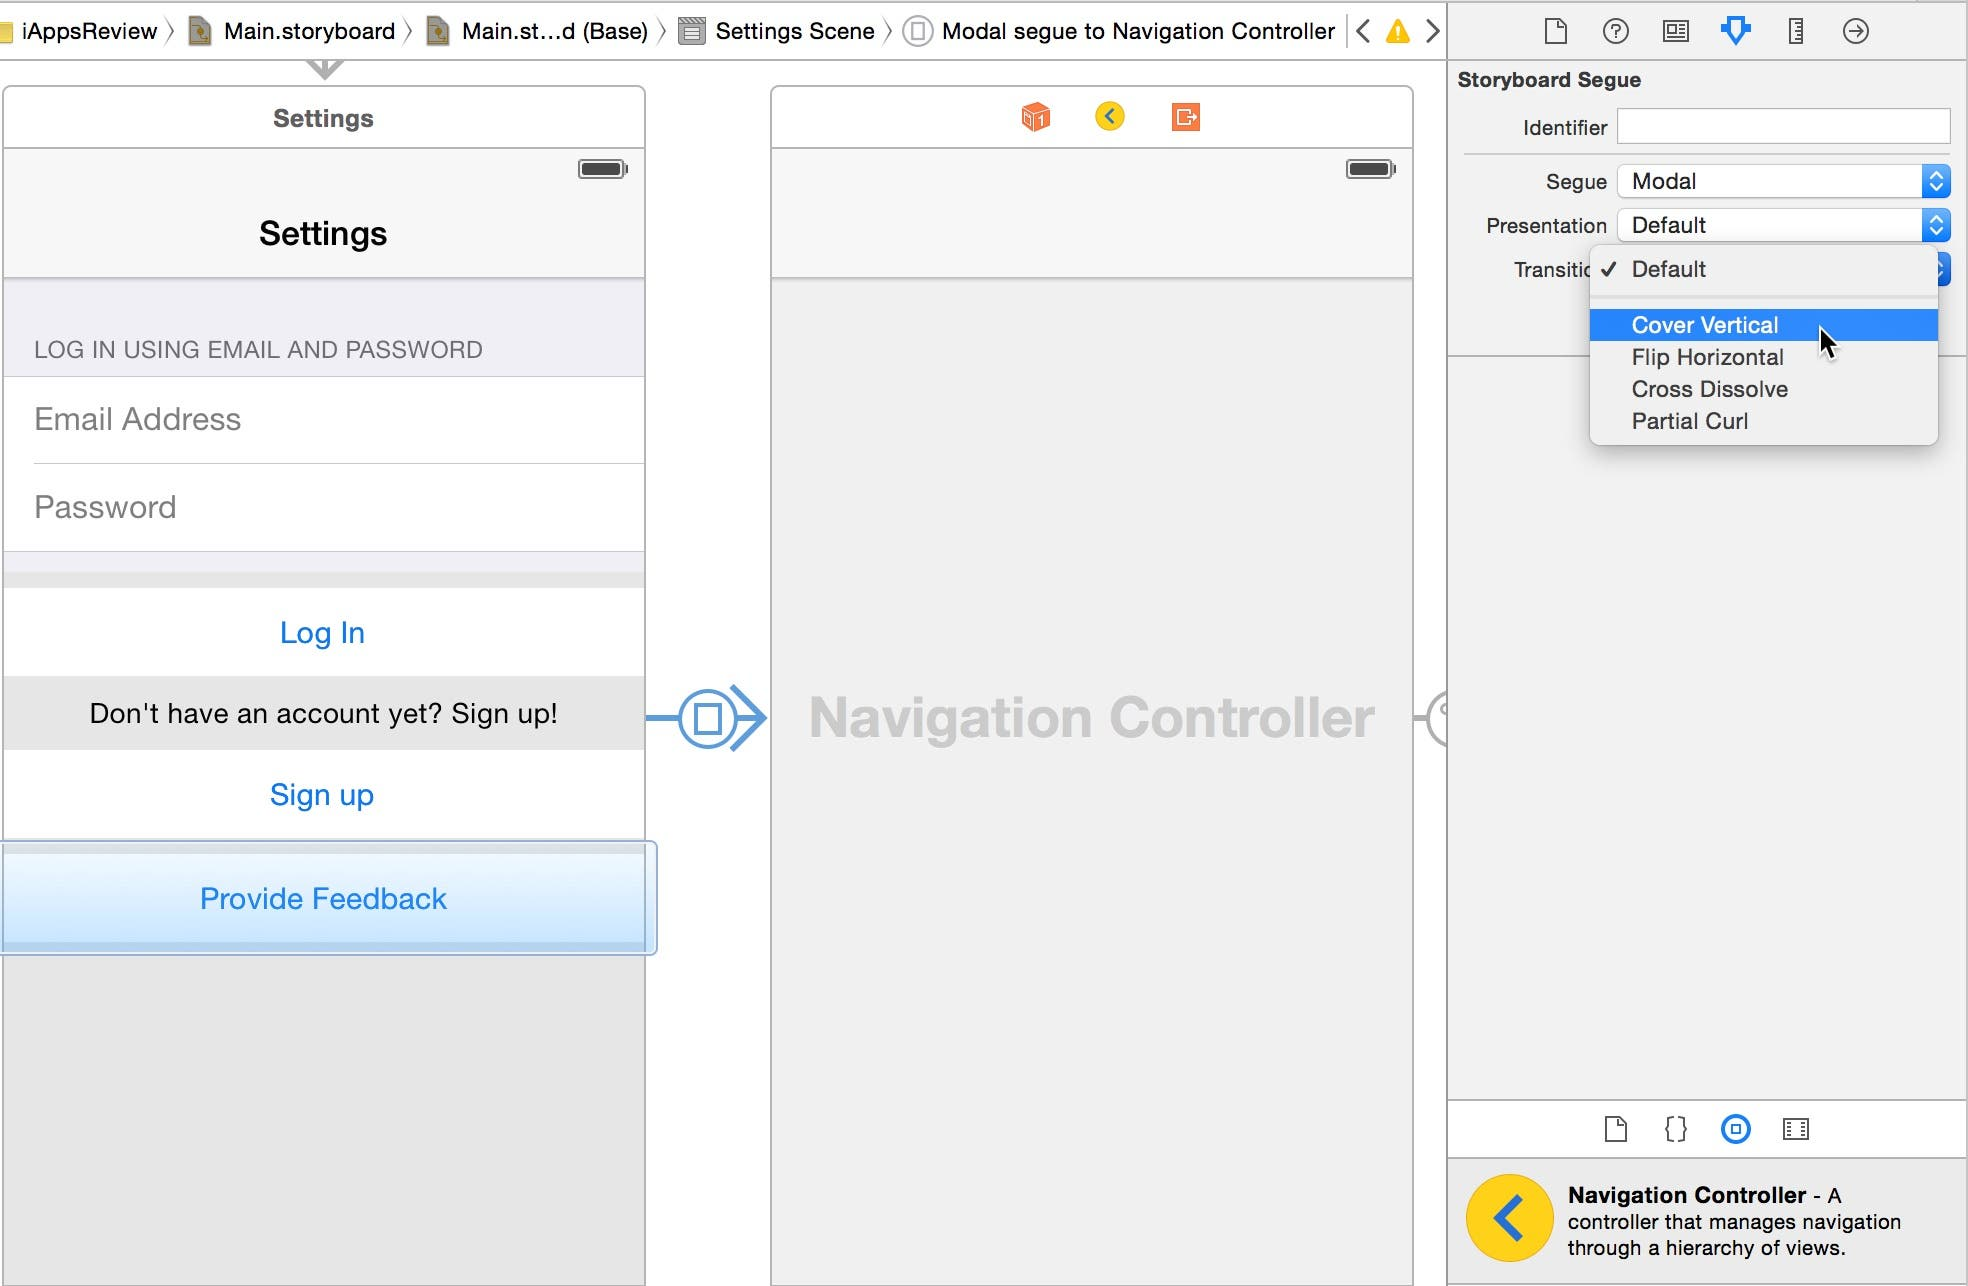 Change the modal segue's Transition attribute to Cover Vertical